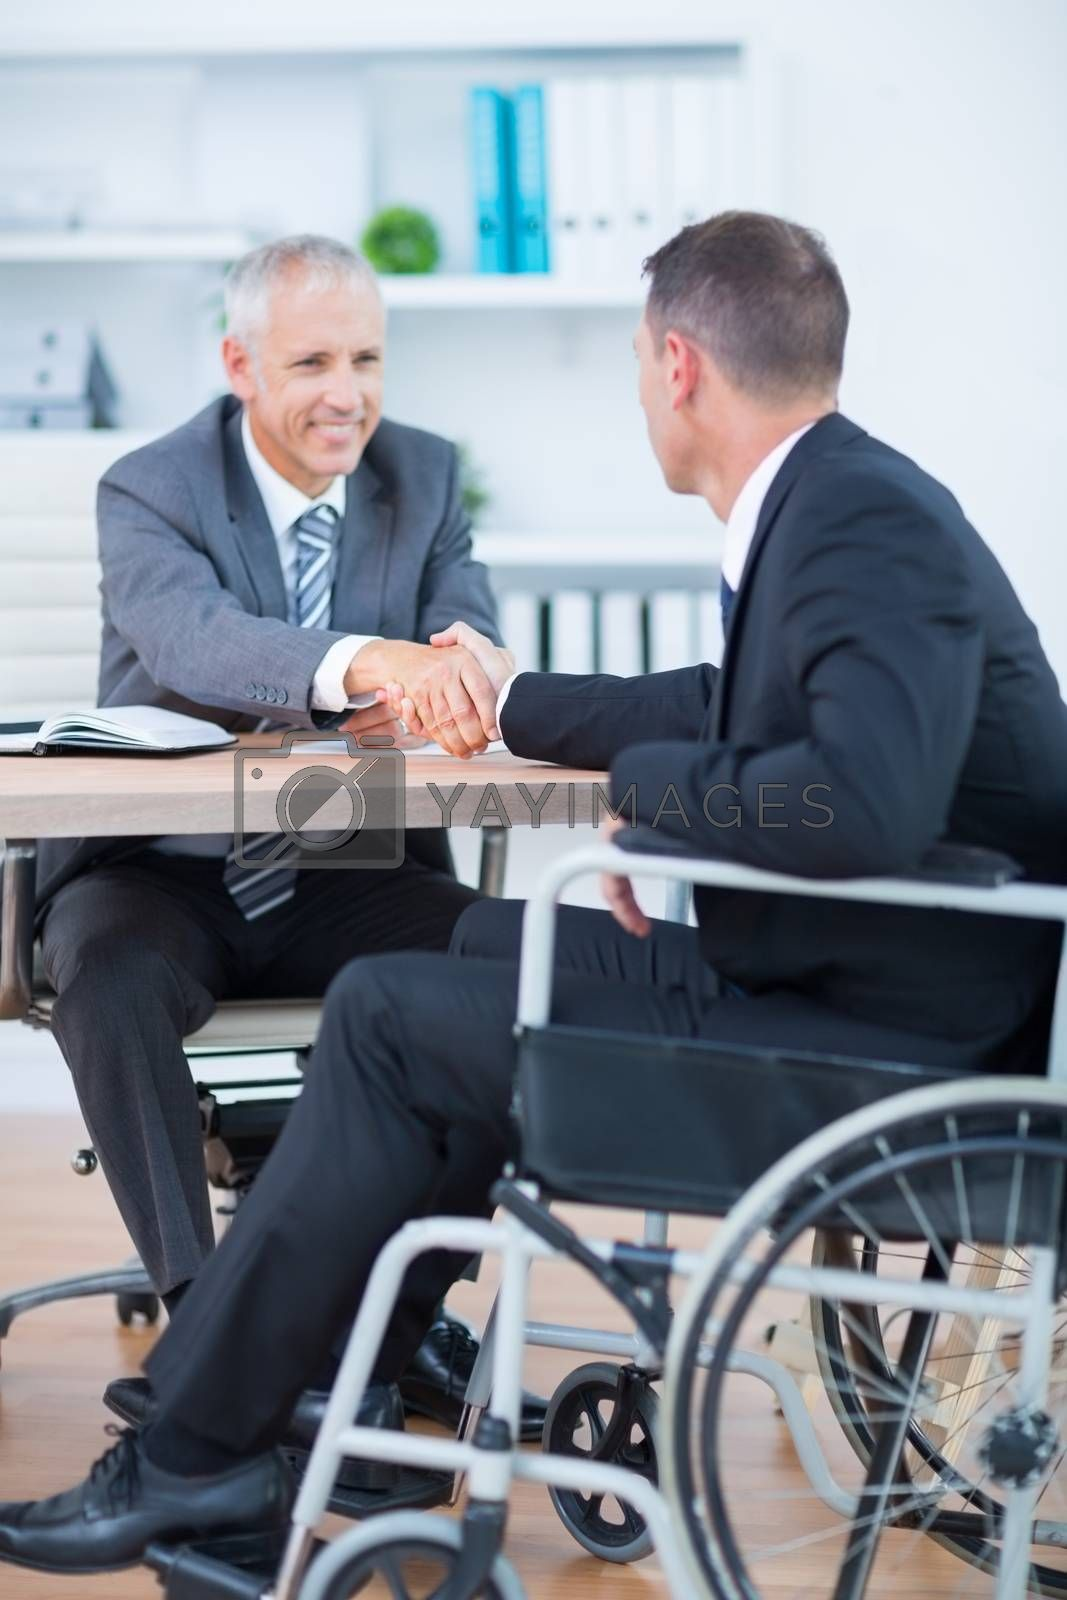 Royalty free image of Businessman in wheelchair shaking hands with colleague by Wavebreakmedia